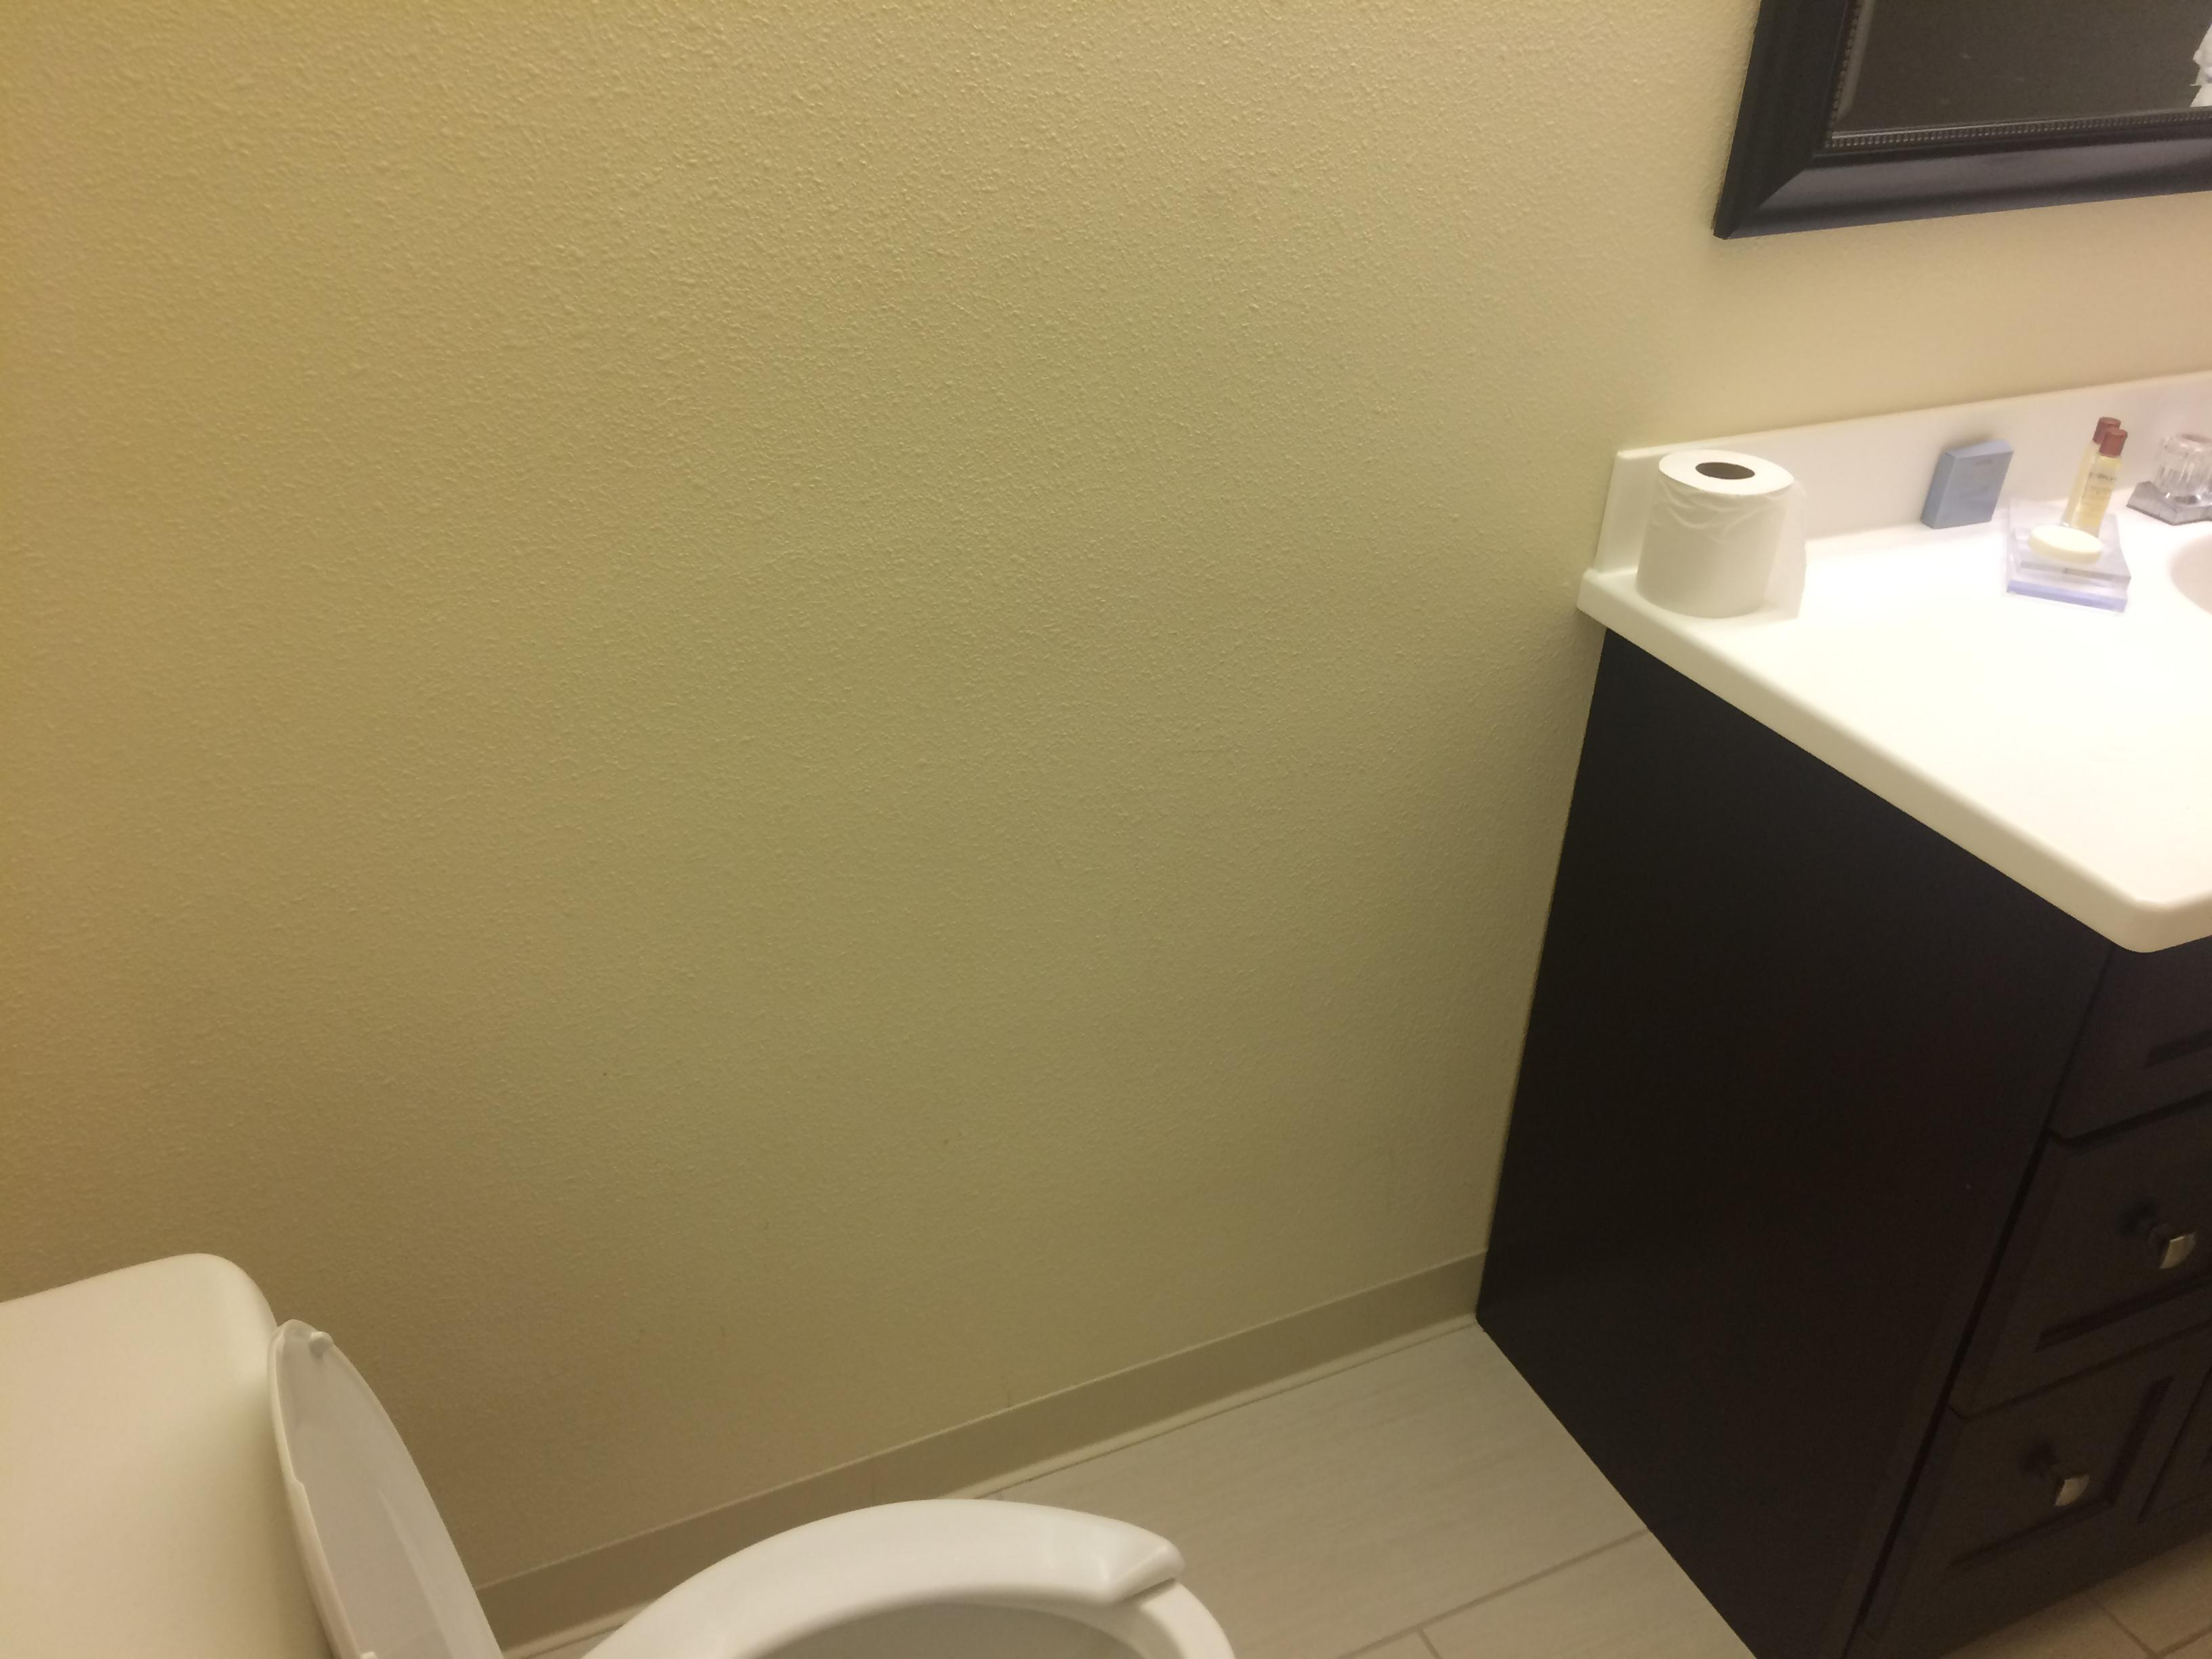 Closet in the bathroom area and the only hook is that loop on the door which is for one towel